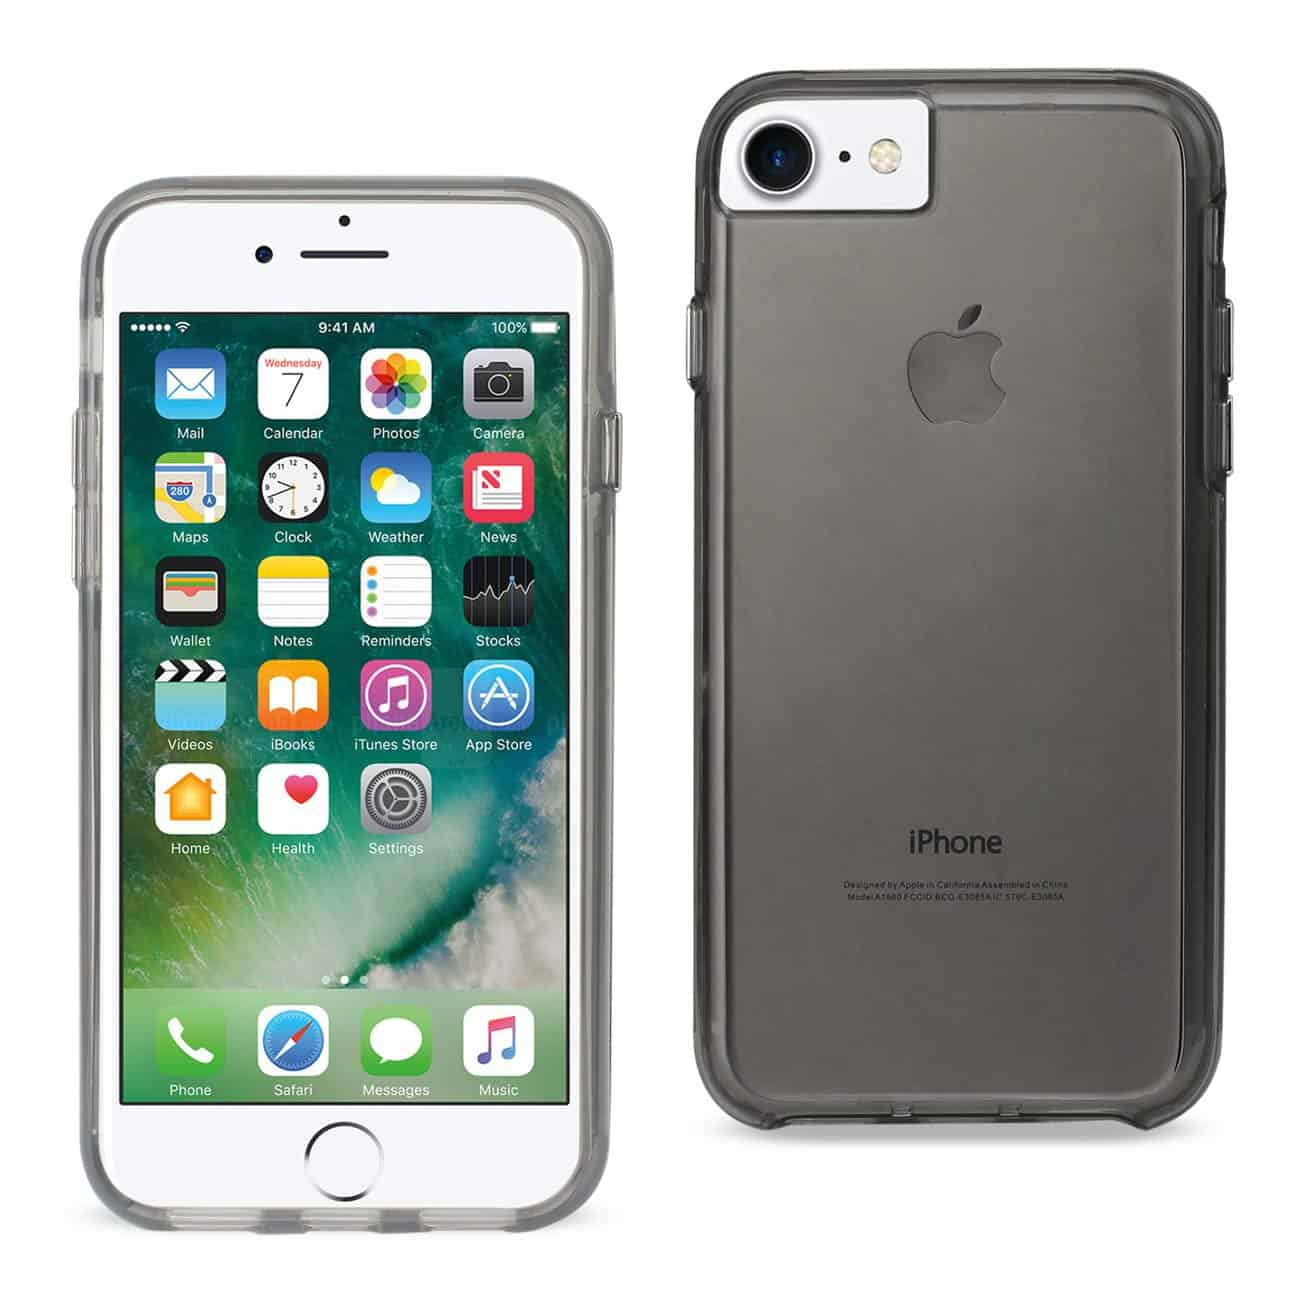 IPHONE 7 TRANSPARENT TPU HARD PROTECTOR COVER WITH INNER EXTRA BUMPER IN CLEAR GRAY